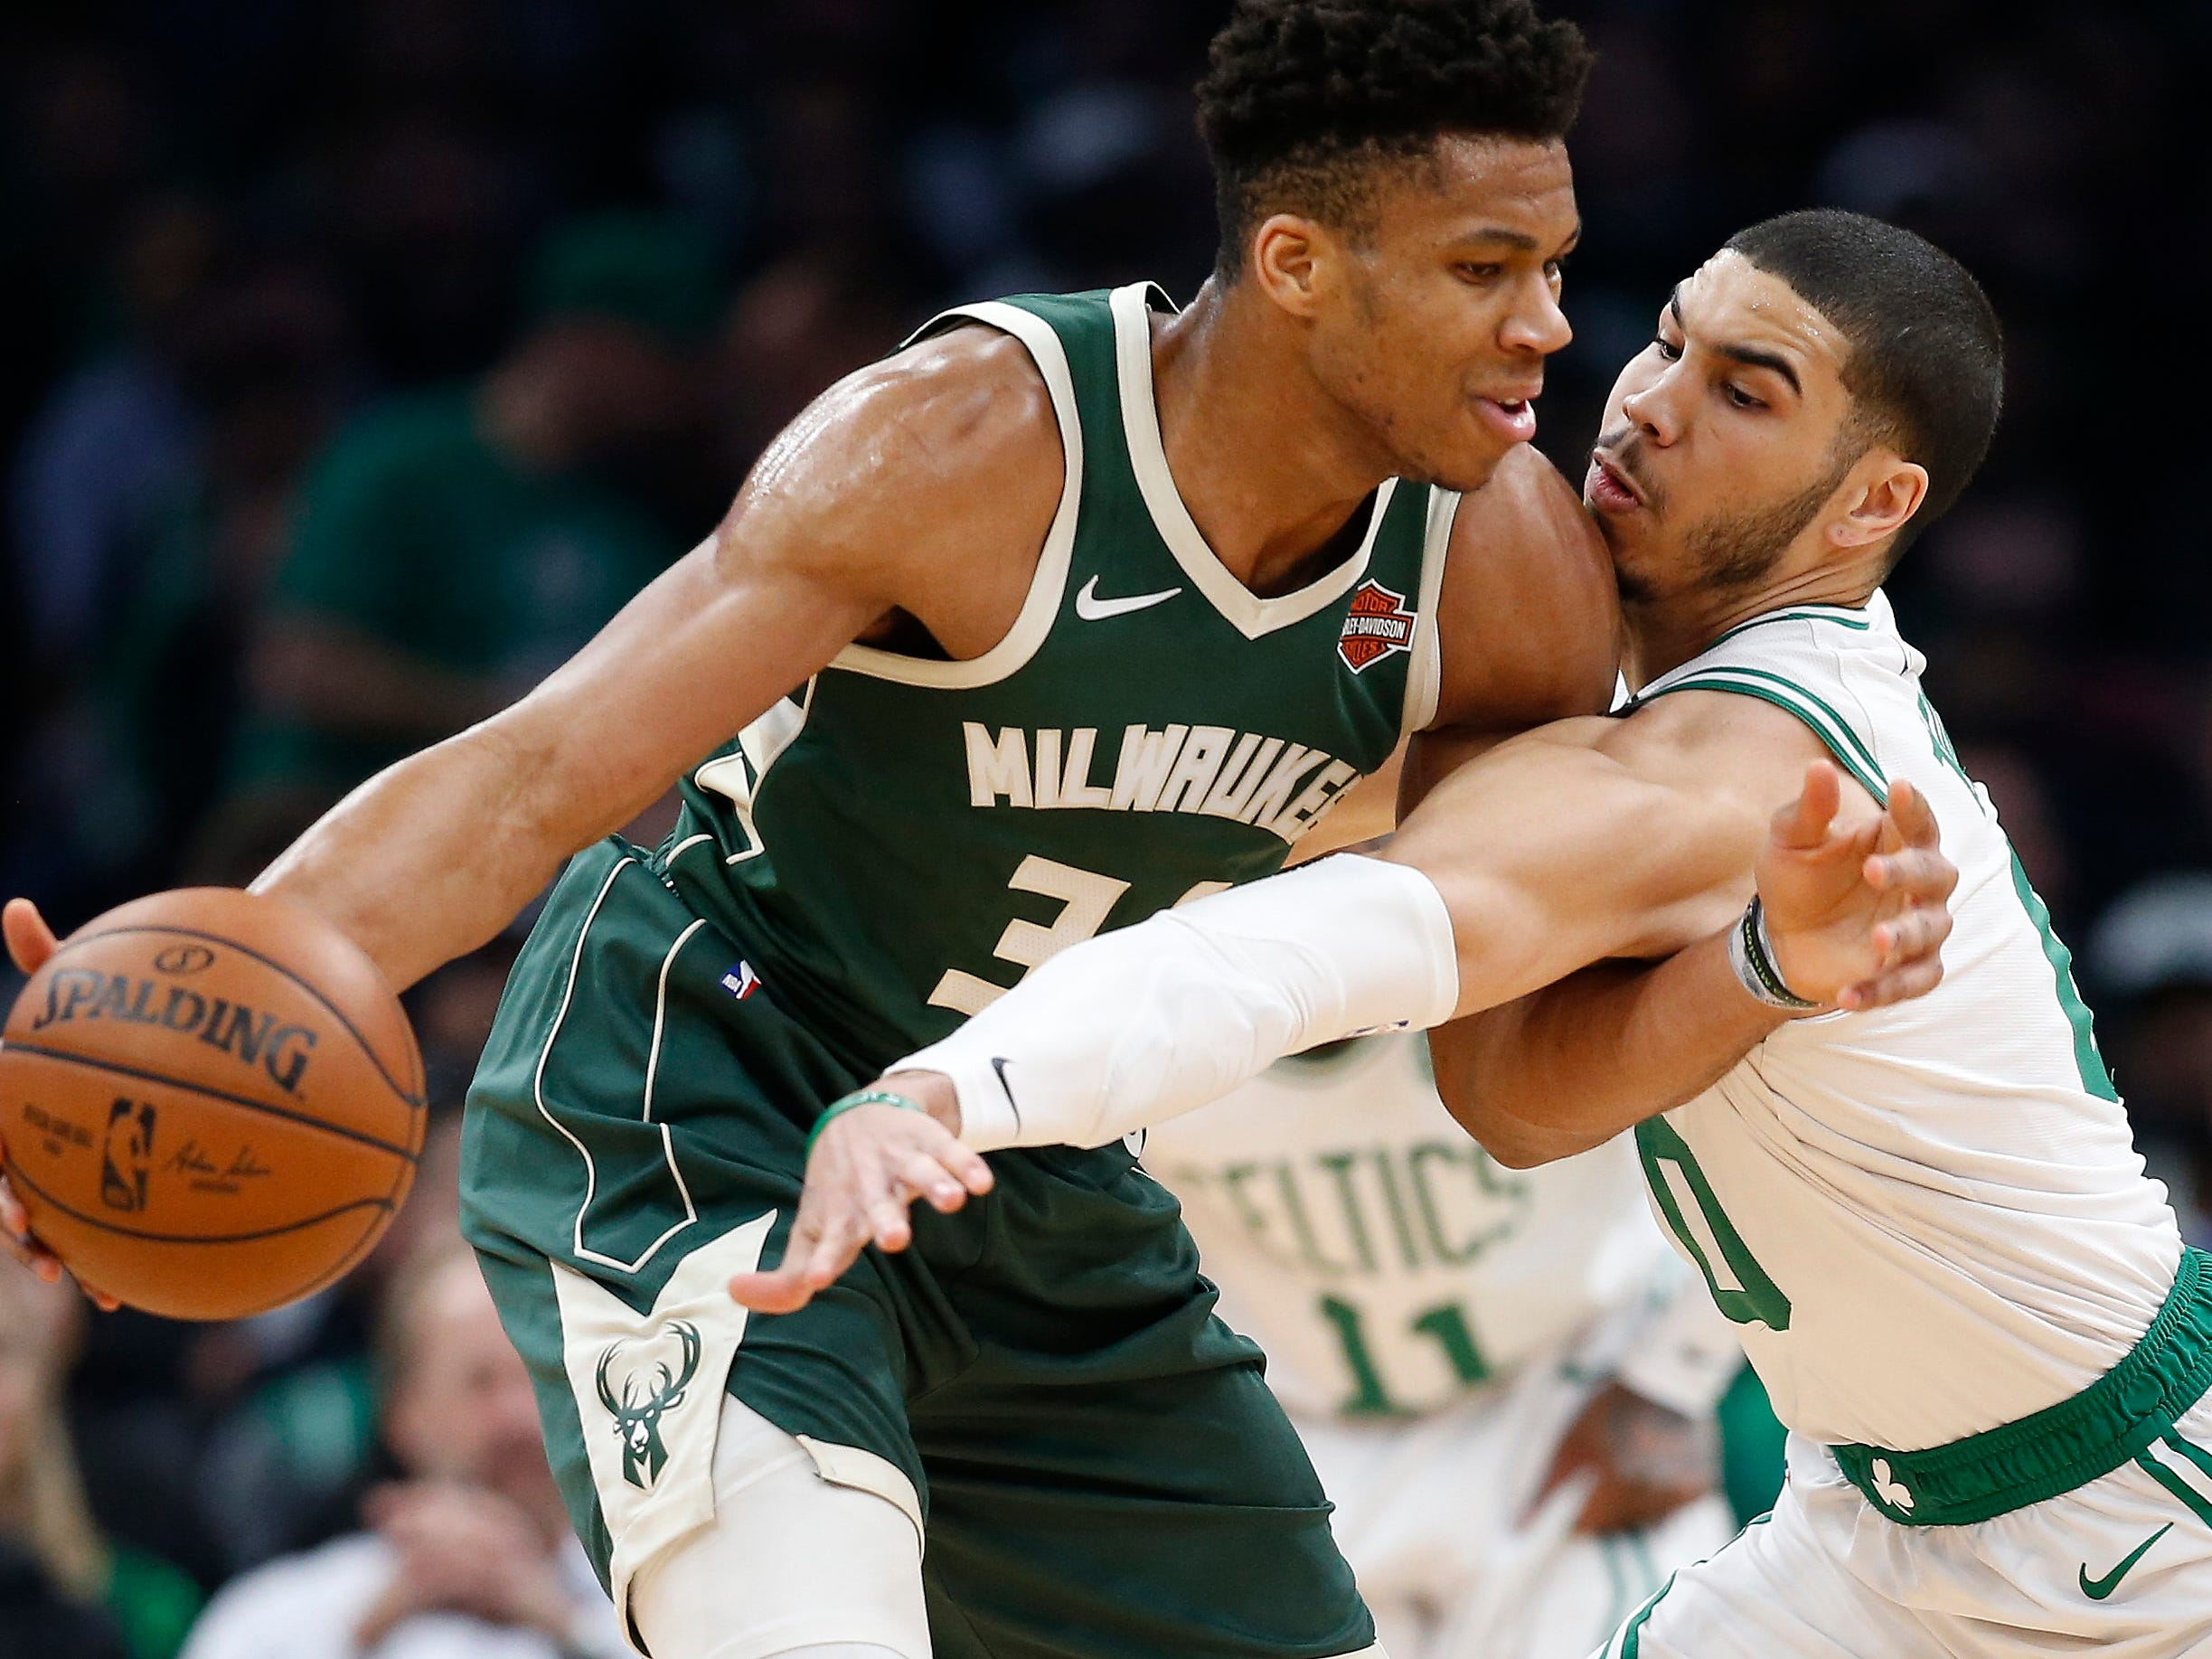 May 6: Bucks forward Giannis Antetokounmpo (34) tries to keep the ball away from Celtics defender Jayson Tatum (0) during Game 4.